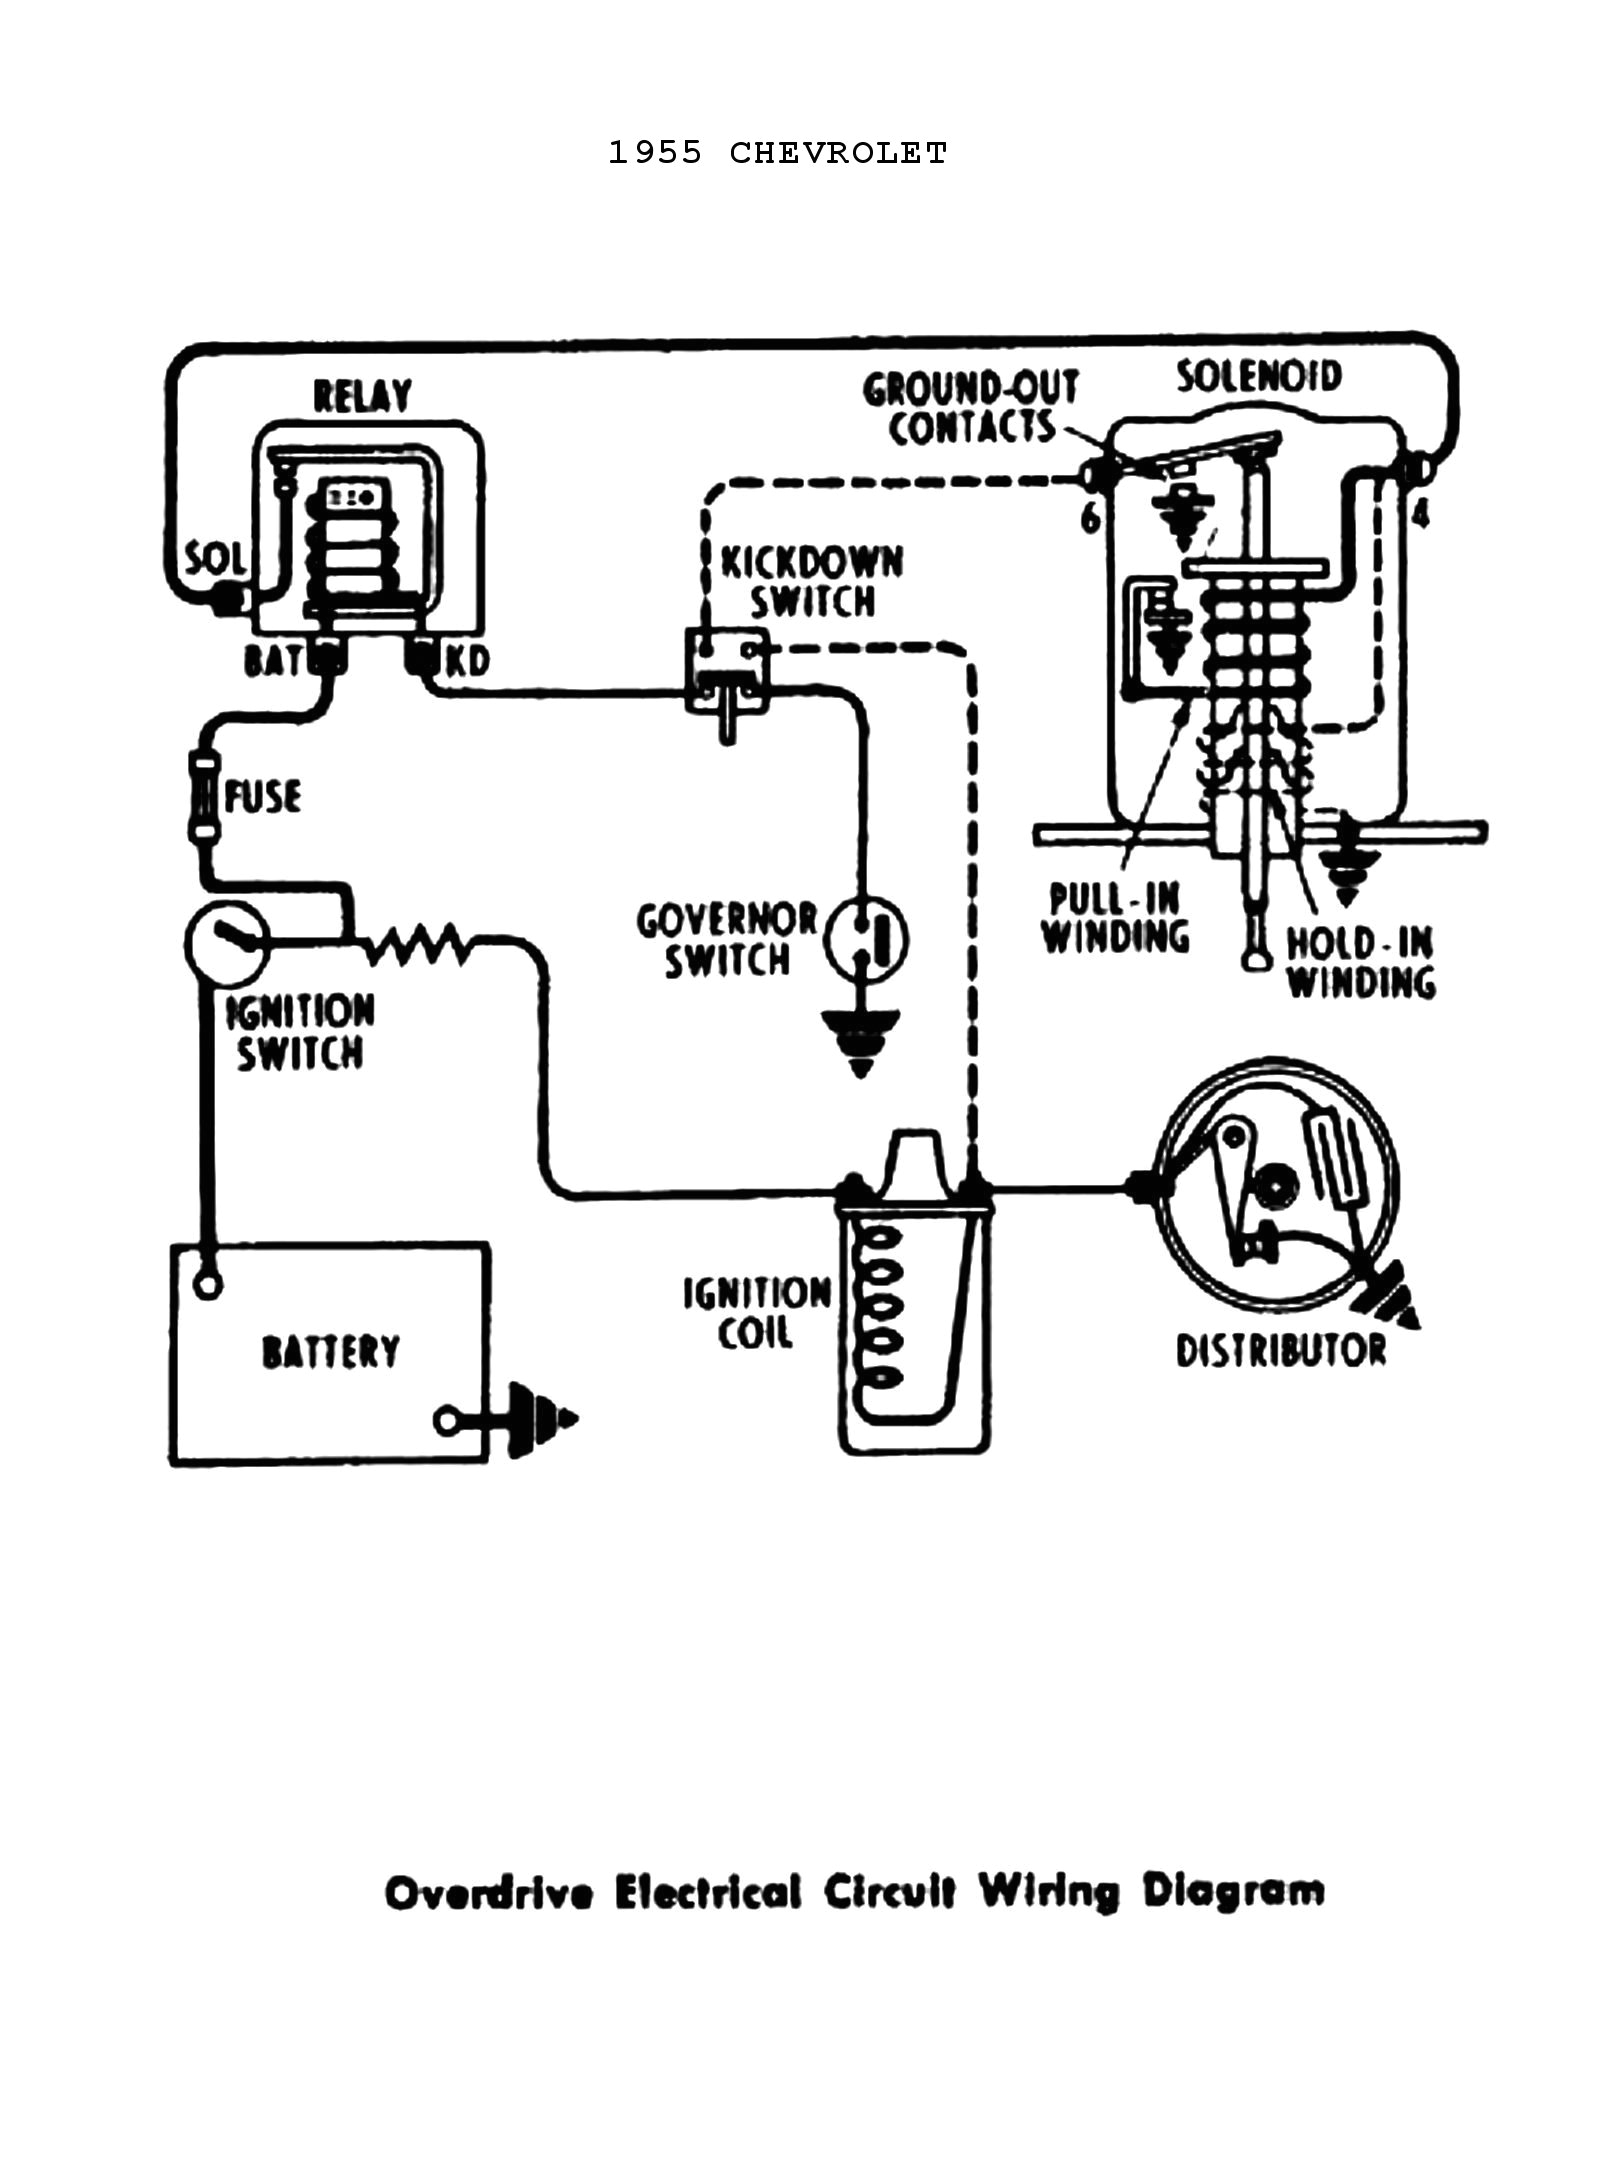 dr182 ignition coil wiring diagram schematic diagram emgo universal ignition coil wiring diagram